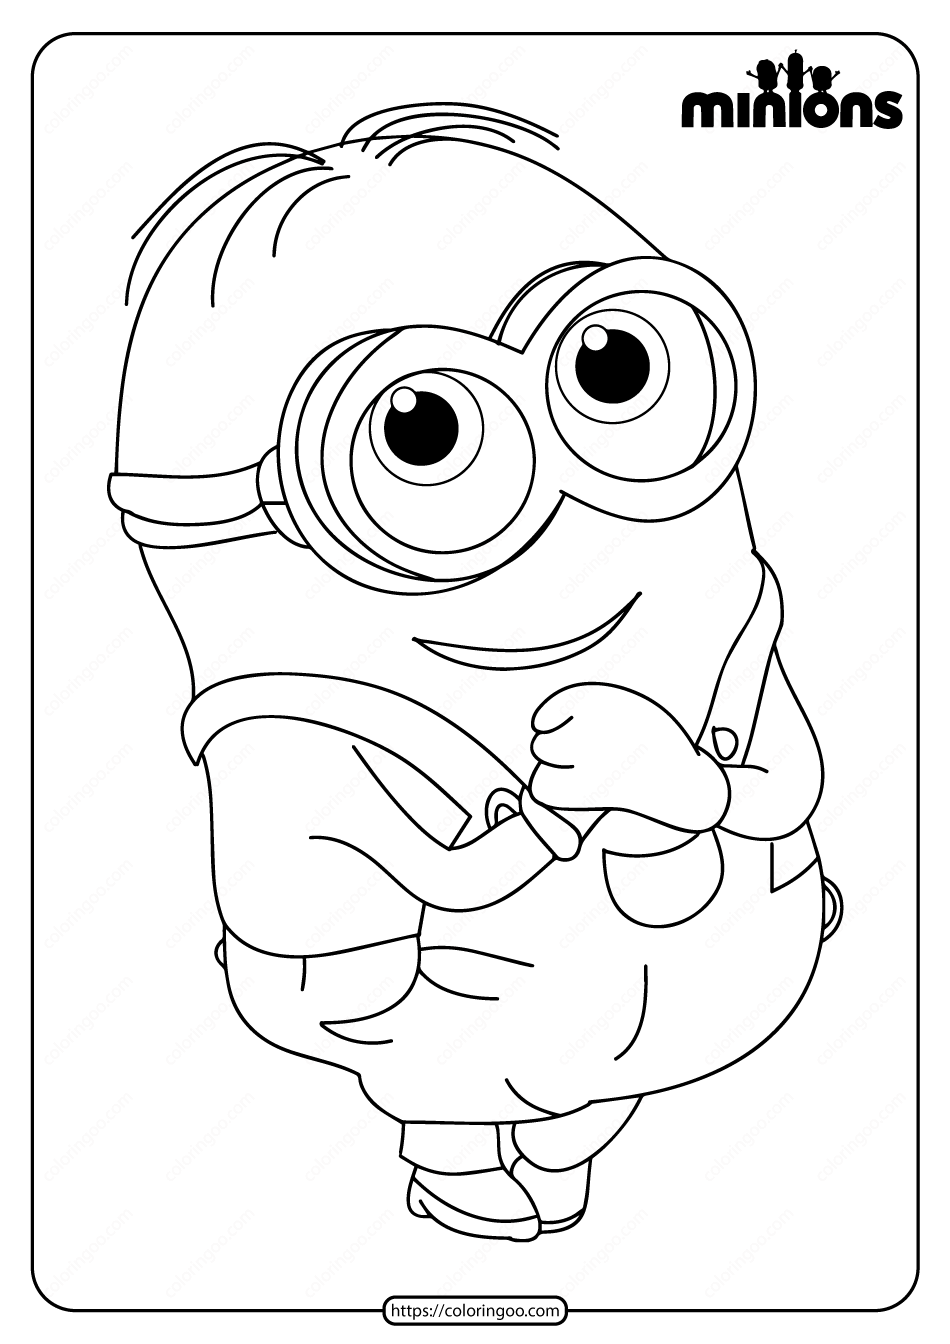 Printable Minions Pdf Coloring Page In 2020 Minion Coloring Pages Minions Coloring Pages Disney Coloring Pages Printables